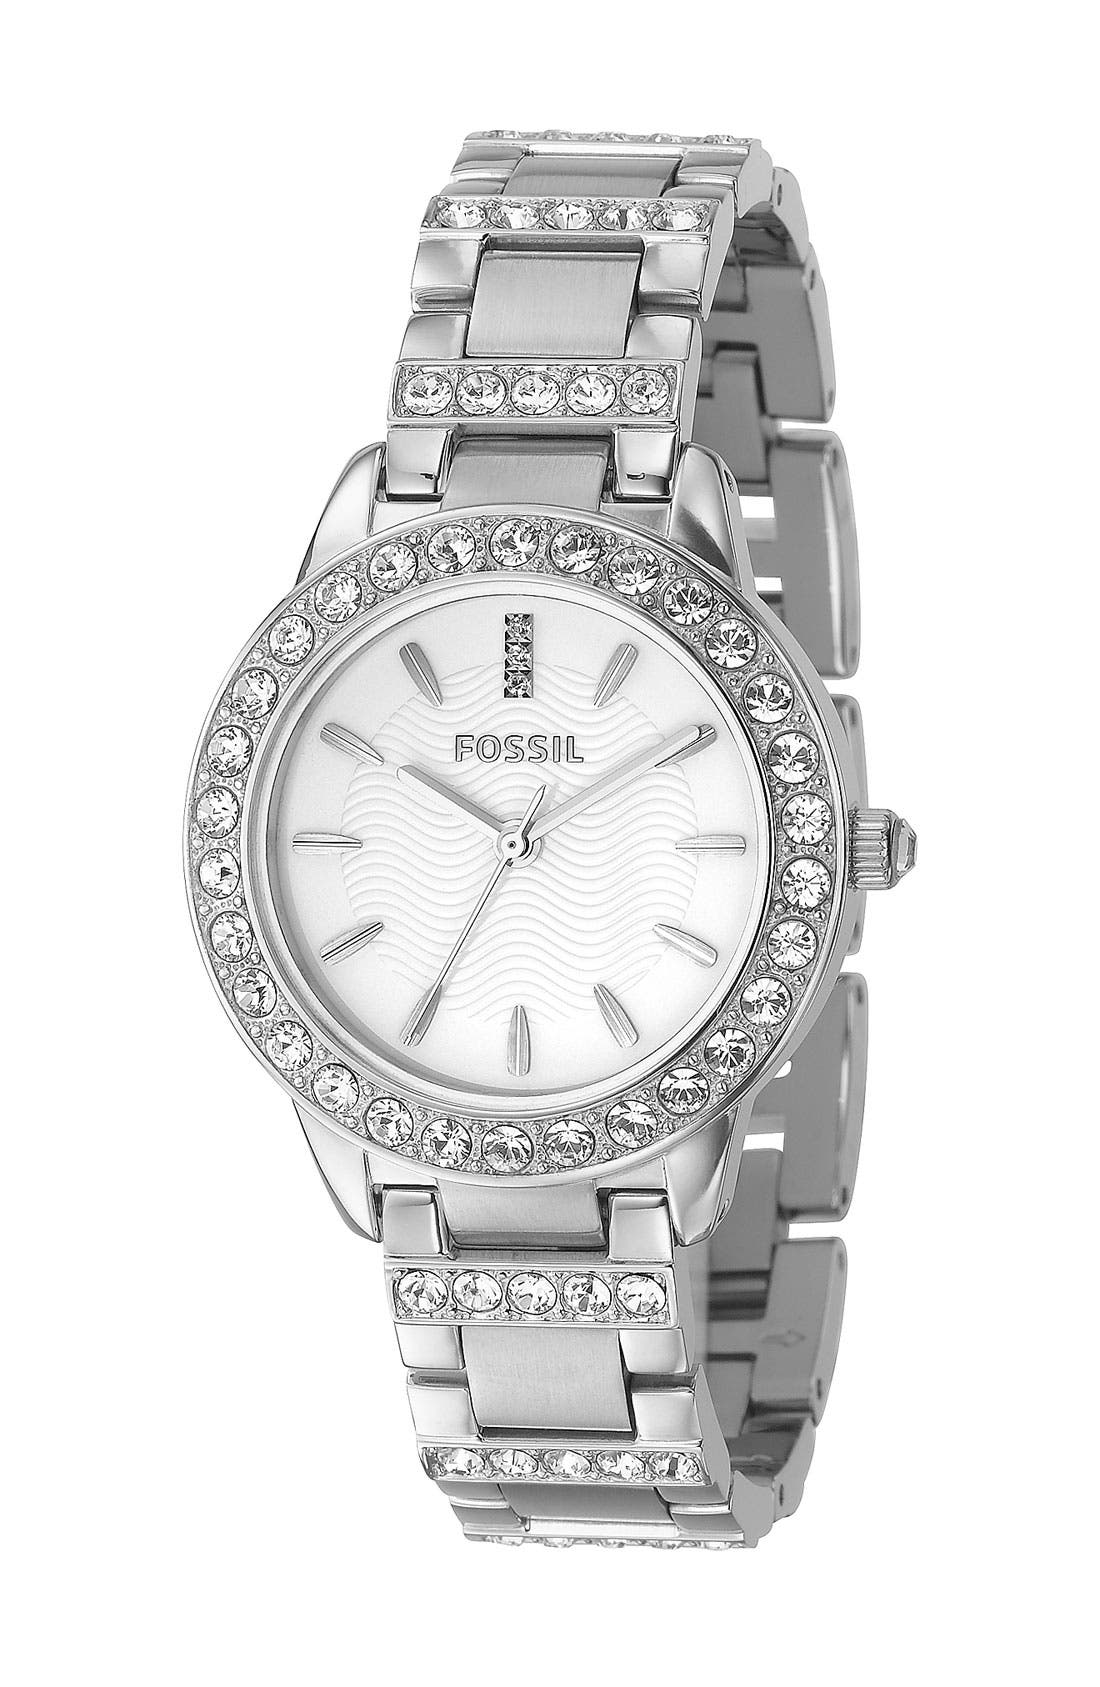 Main Image - Fossil 'Jesse' Crystal Embellished Bracelet Watch, 34mm